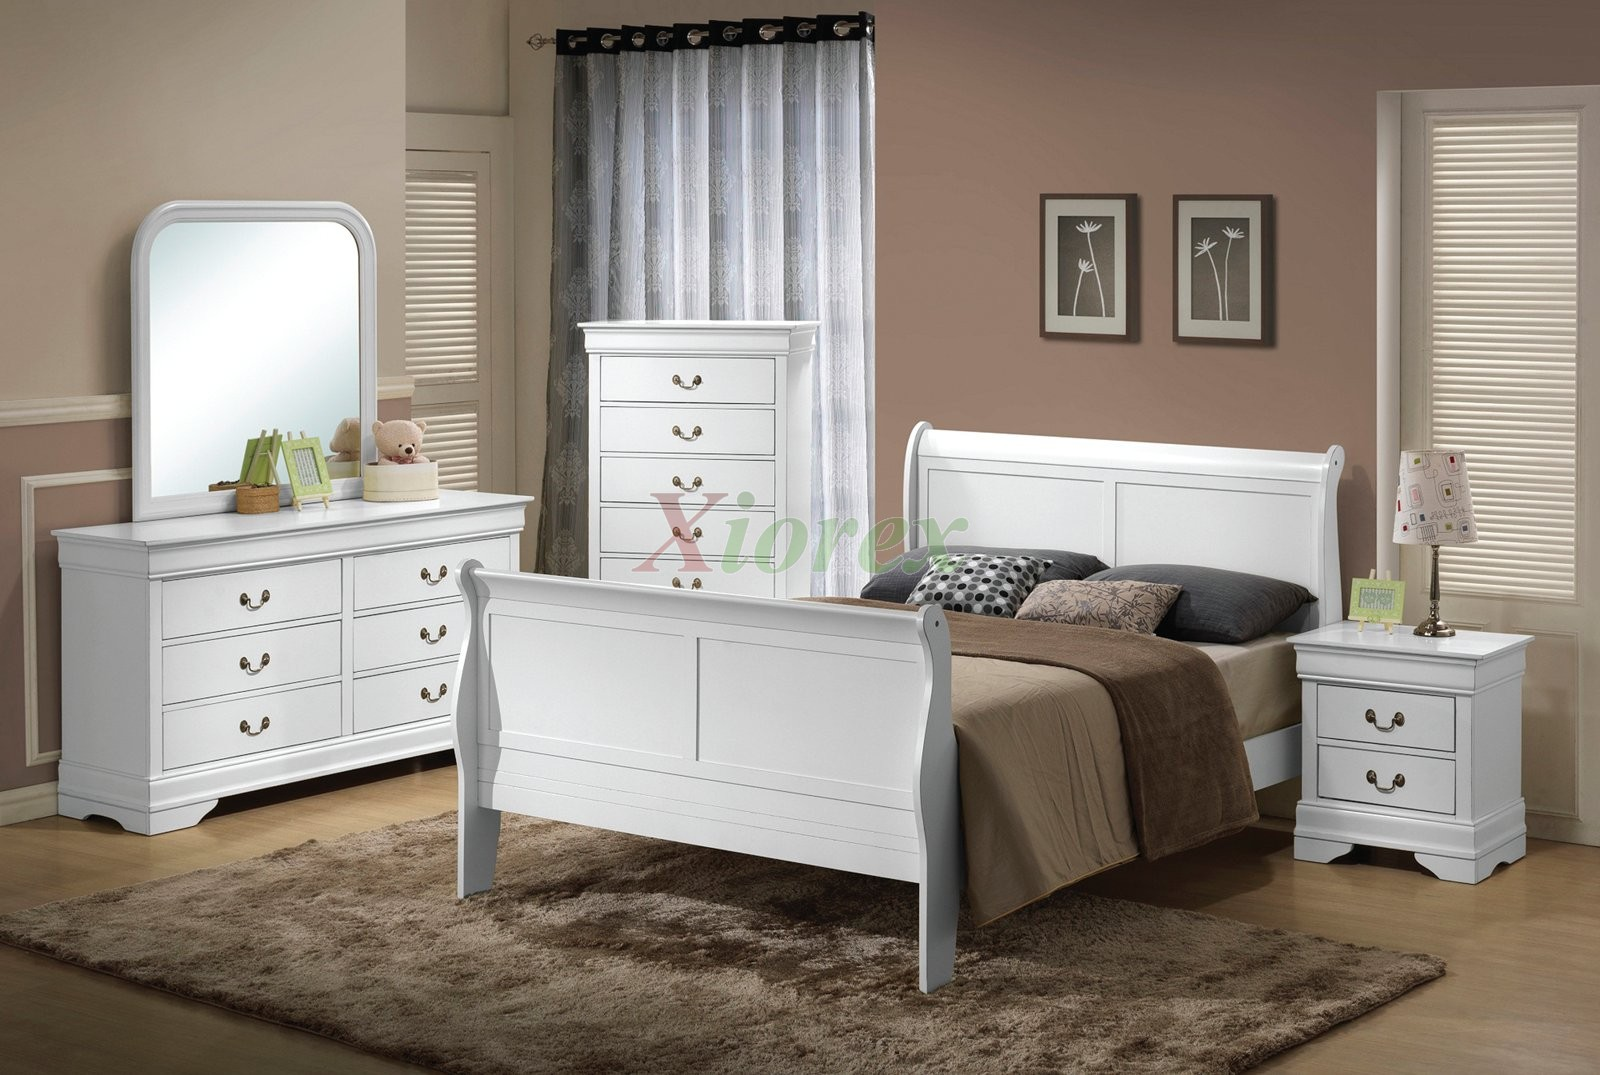 Semi gloss White Bedroom Suite 170 w Sleigh